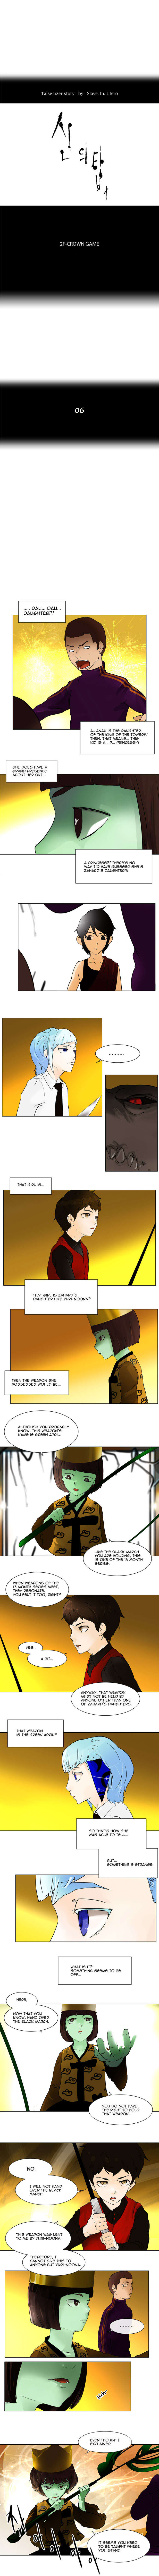 Tower of God 19 Page 2